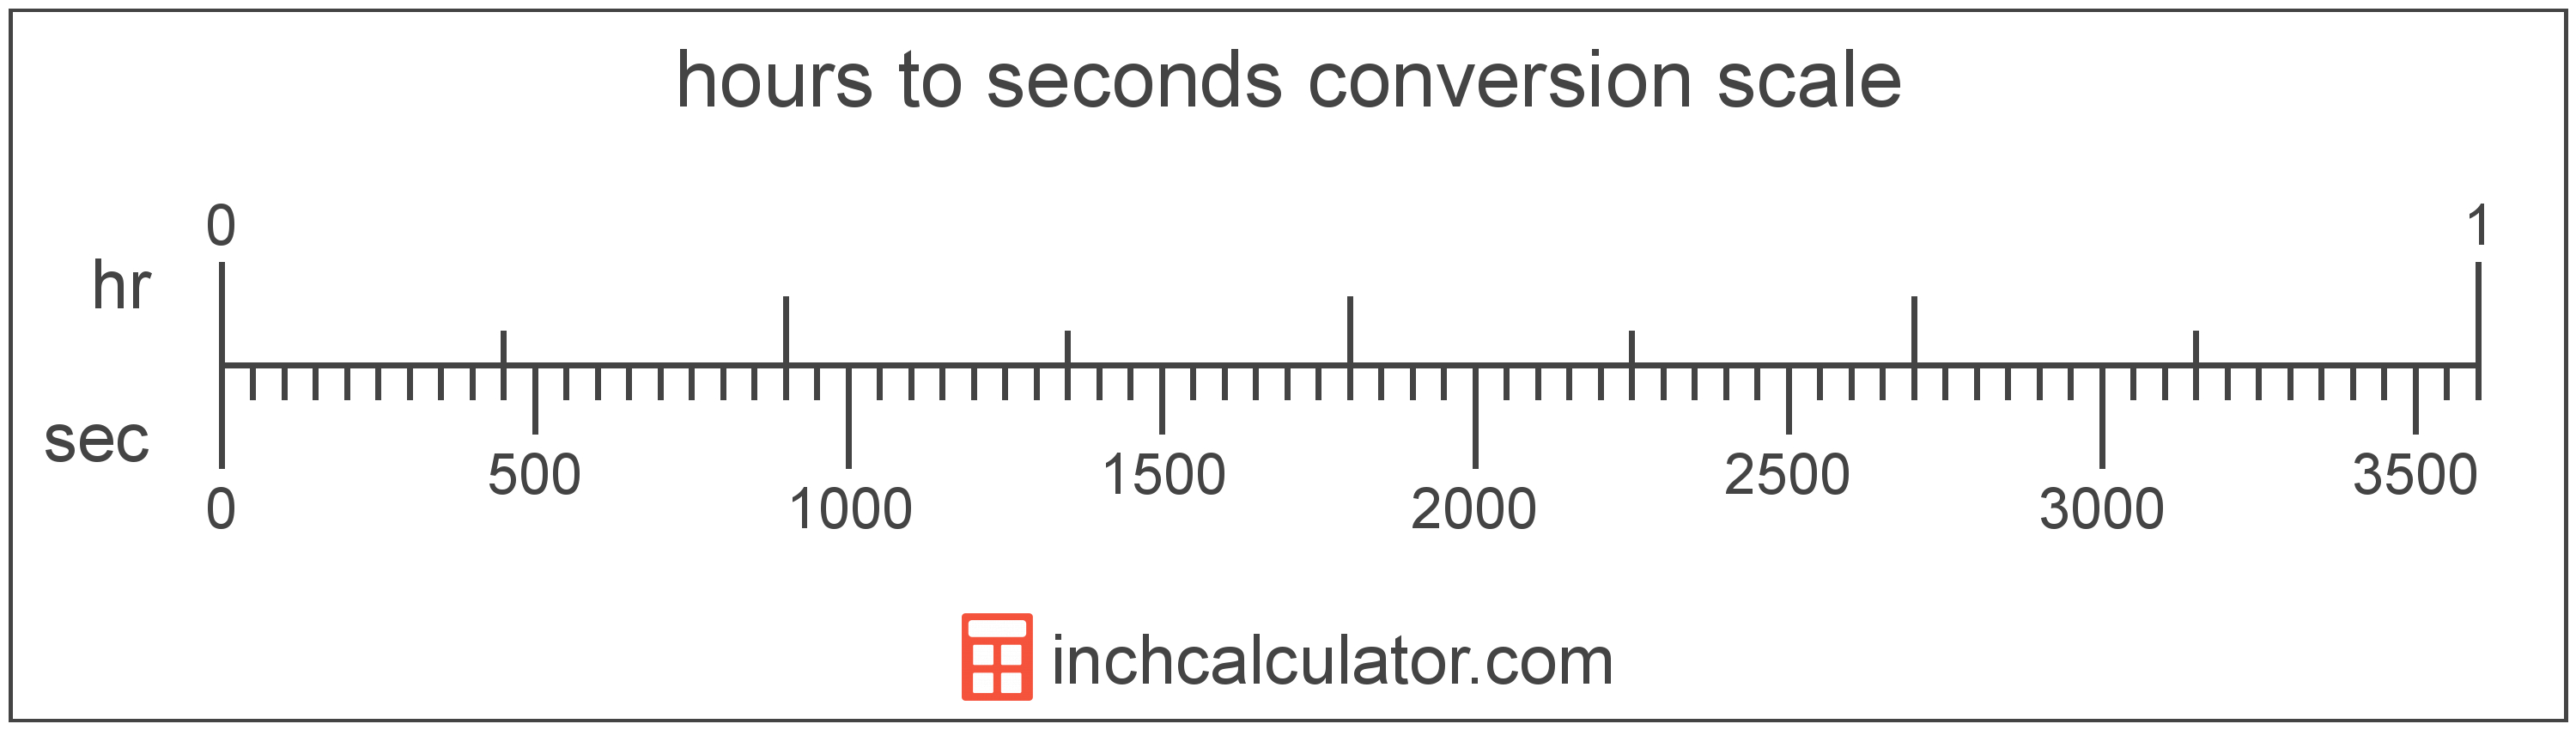 Convert Hours to Seconds - (hr to sec) - Inch Calculator